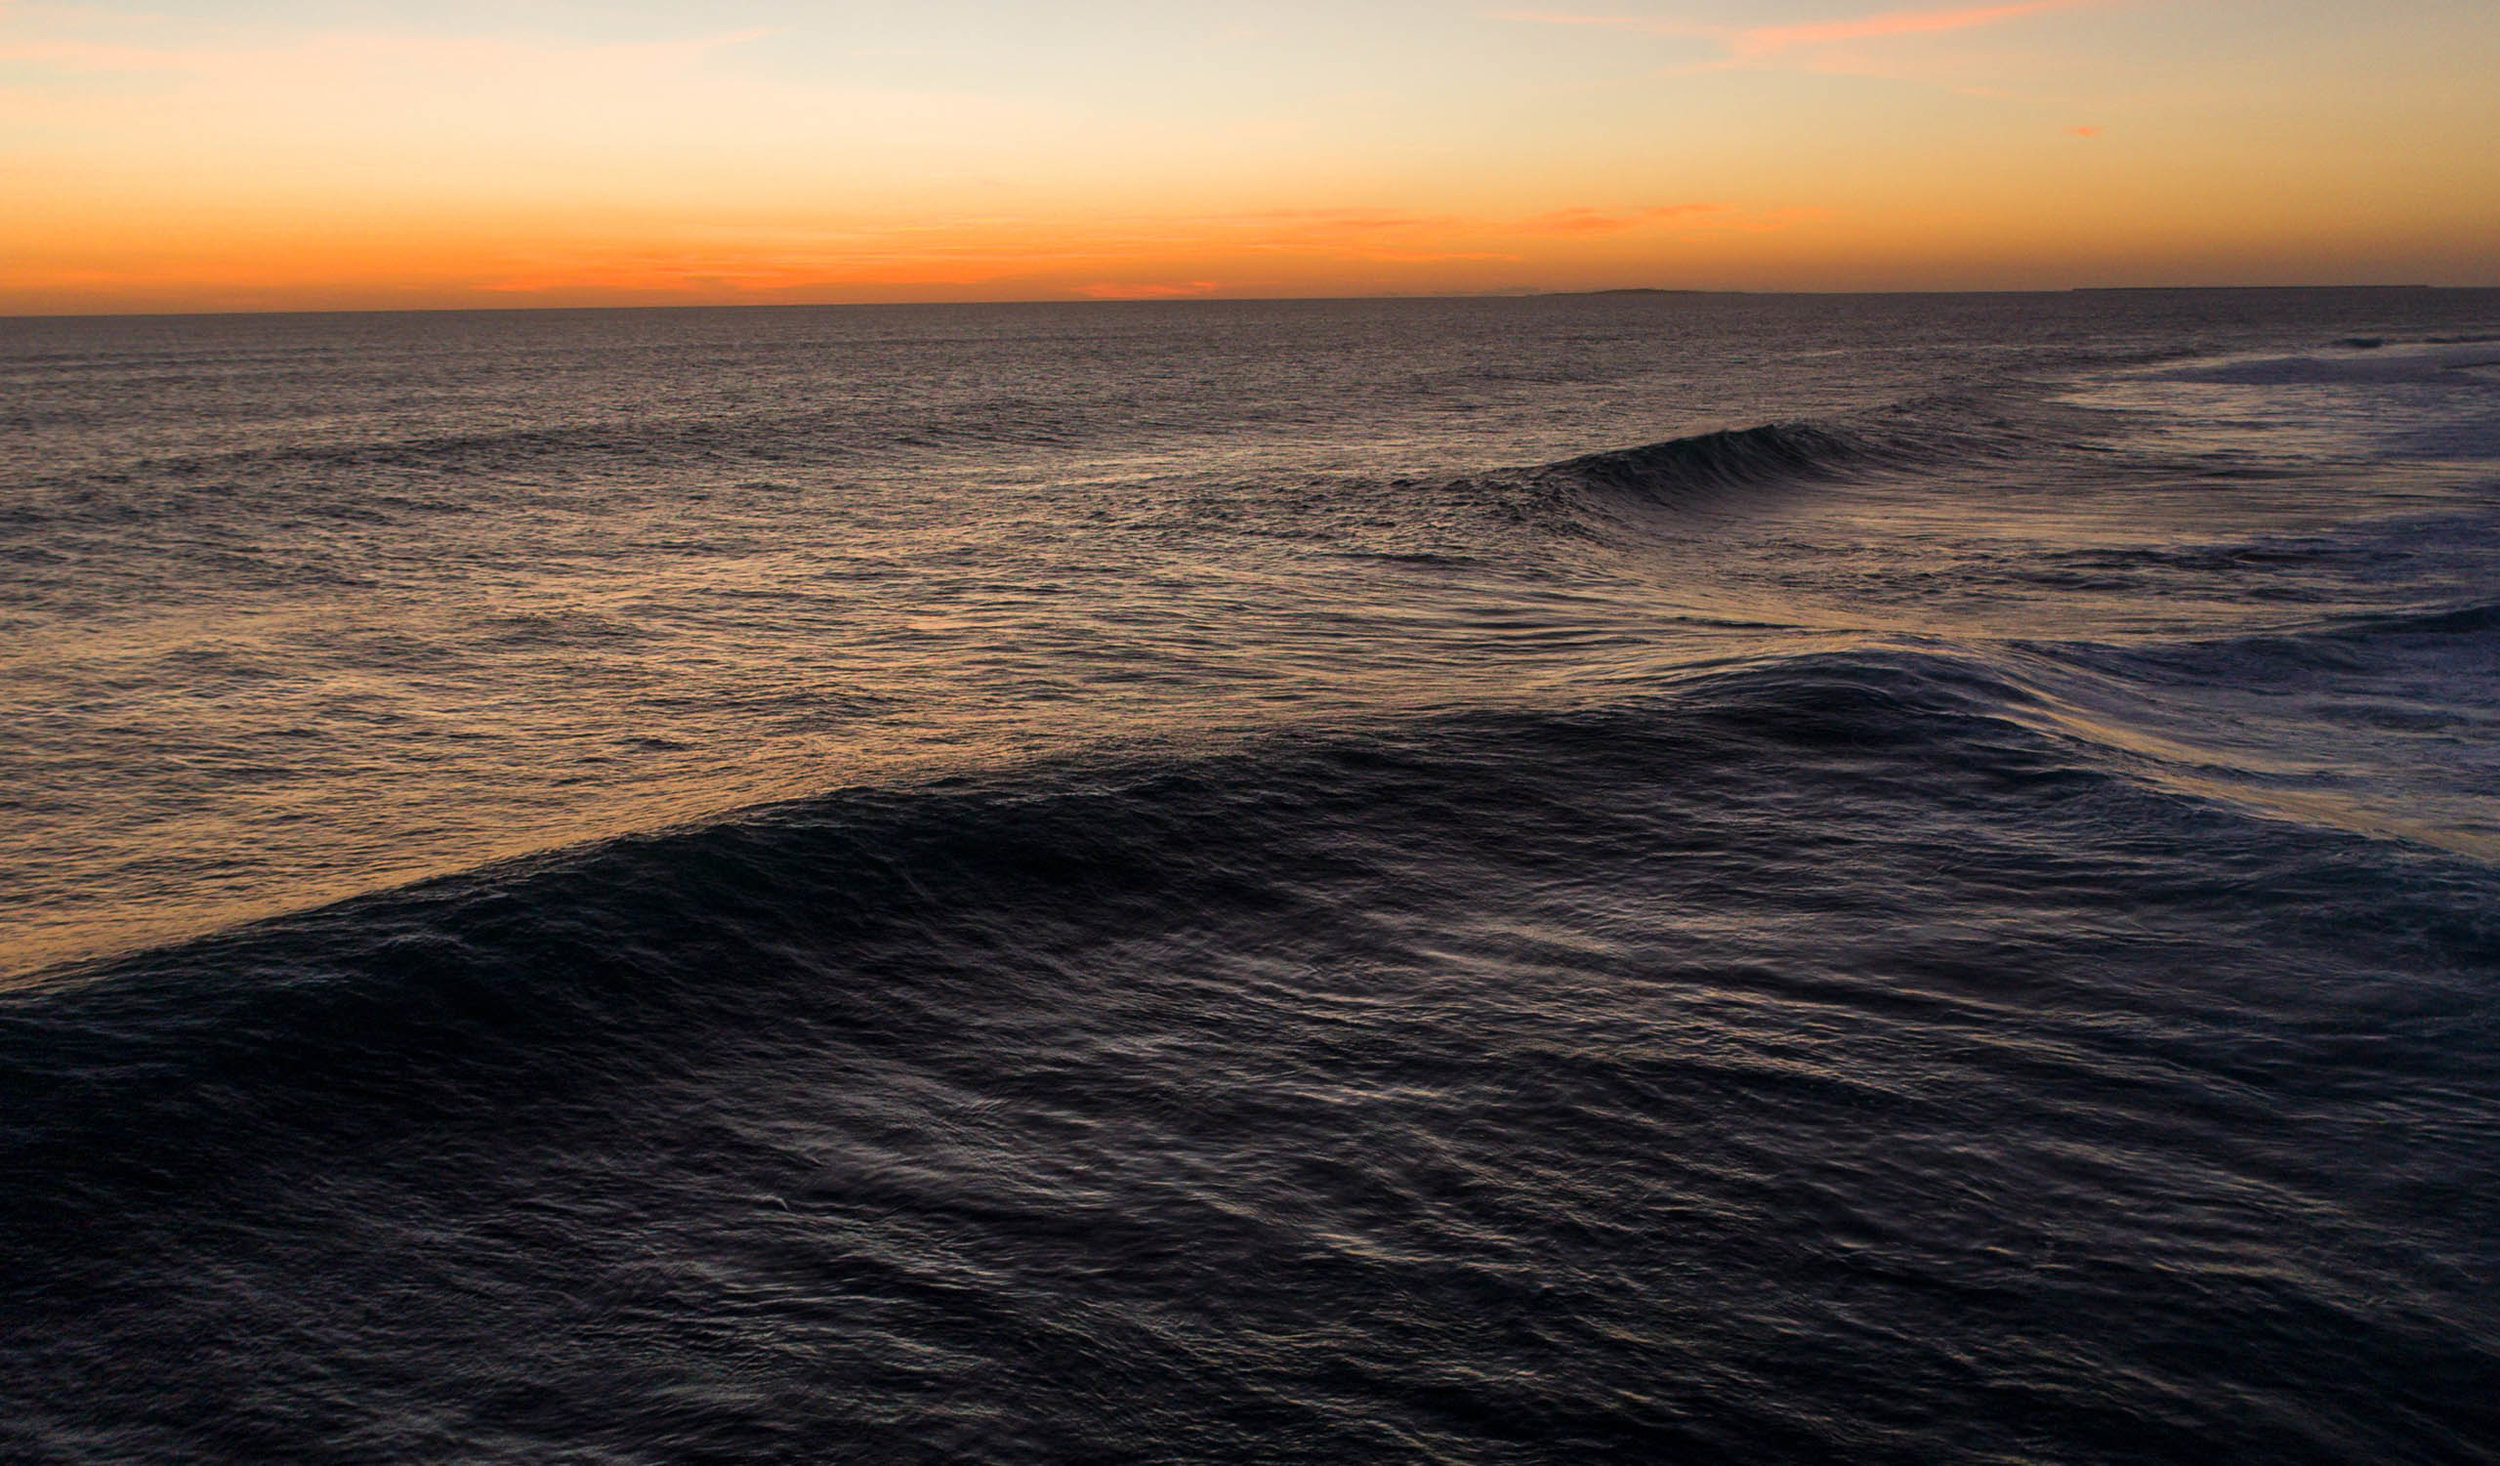 The sunset mixed with the waves is the daily combination here.